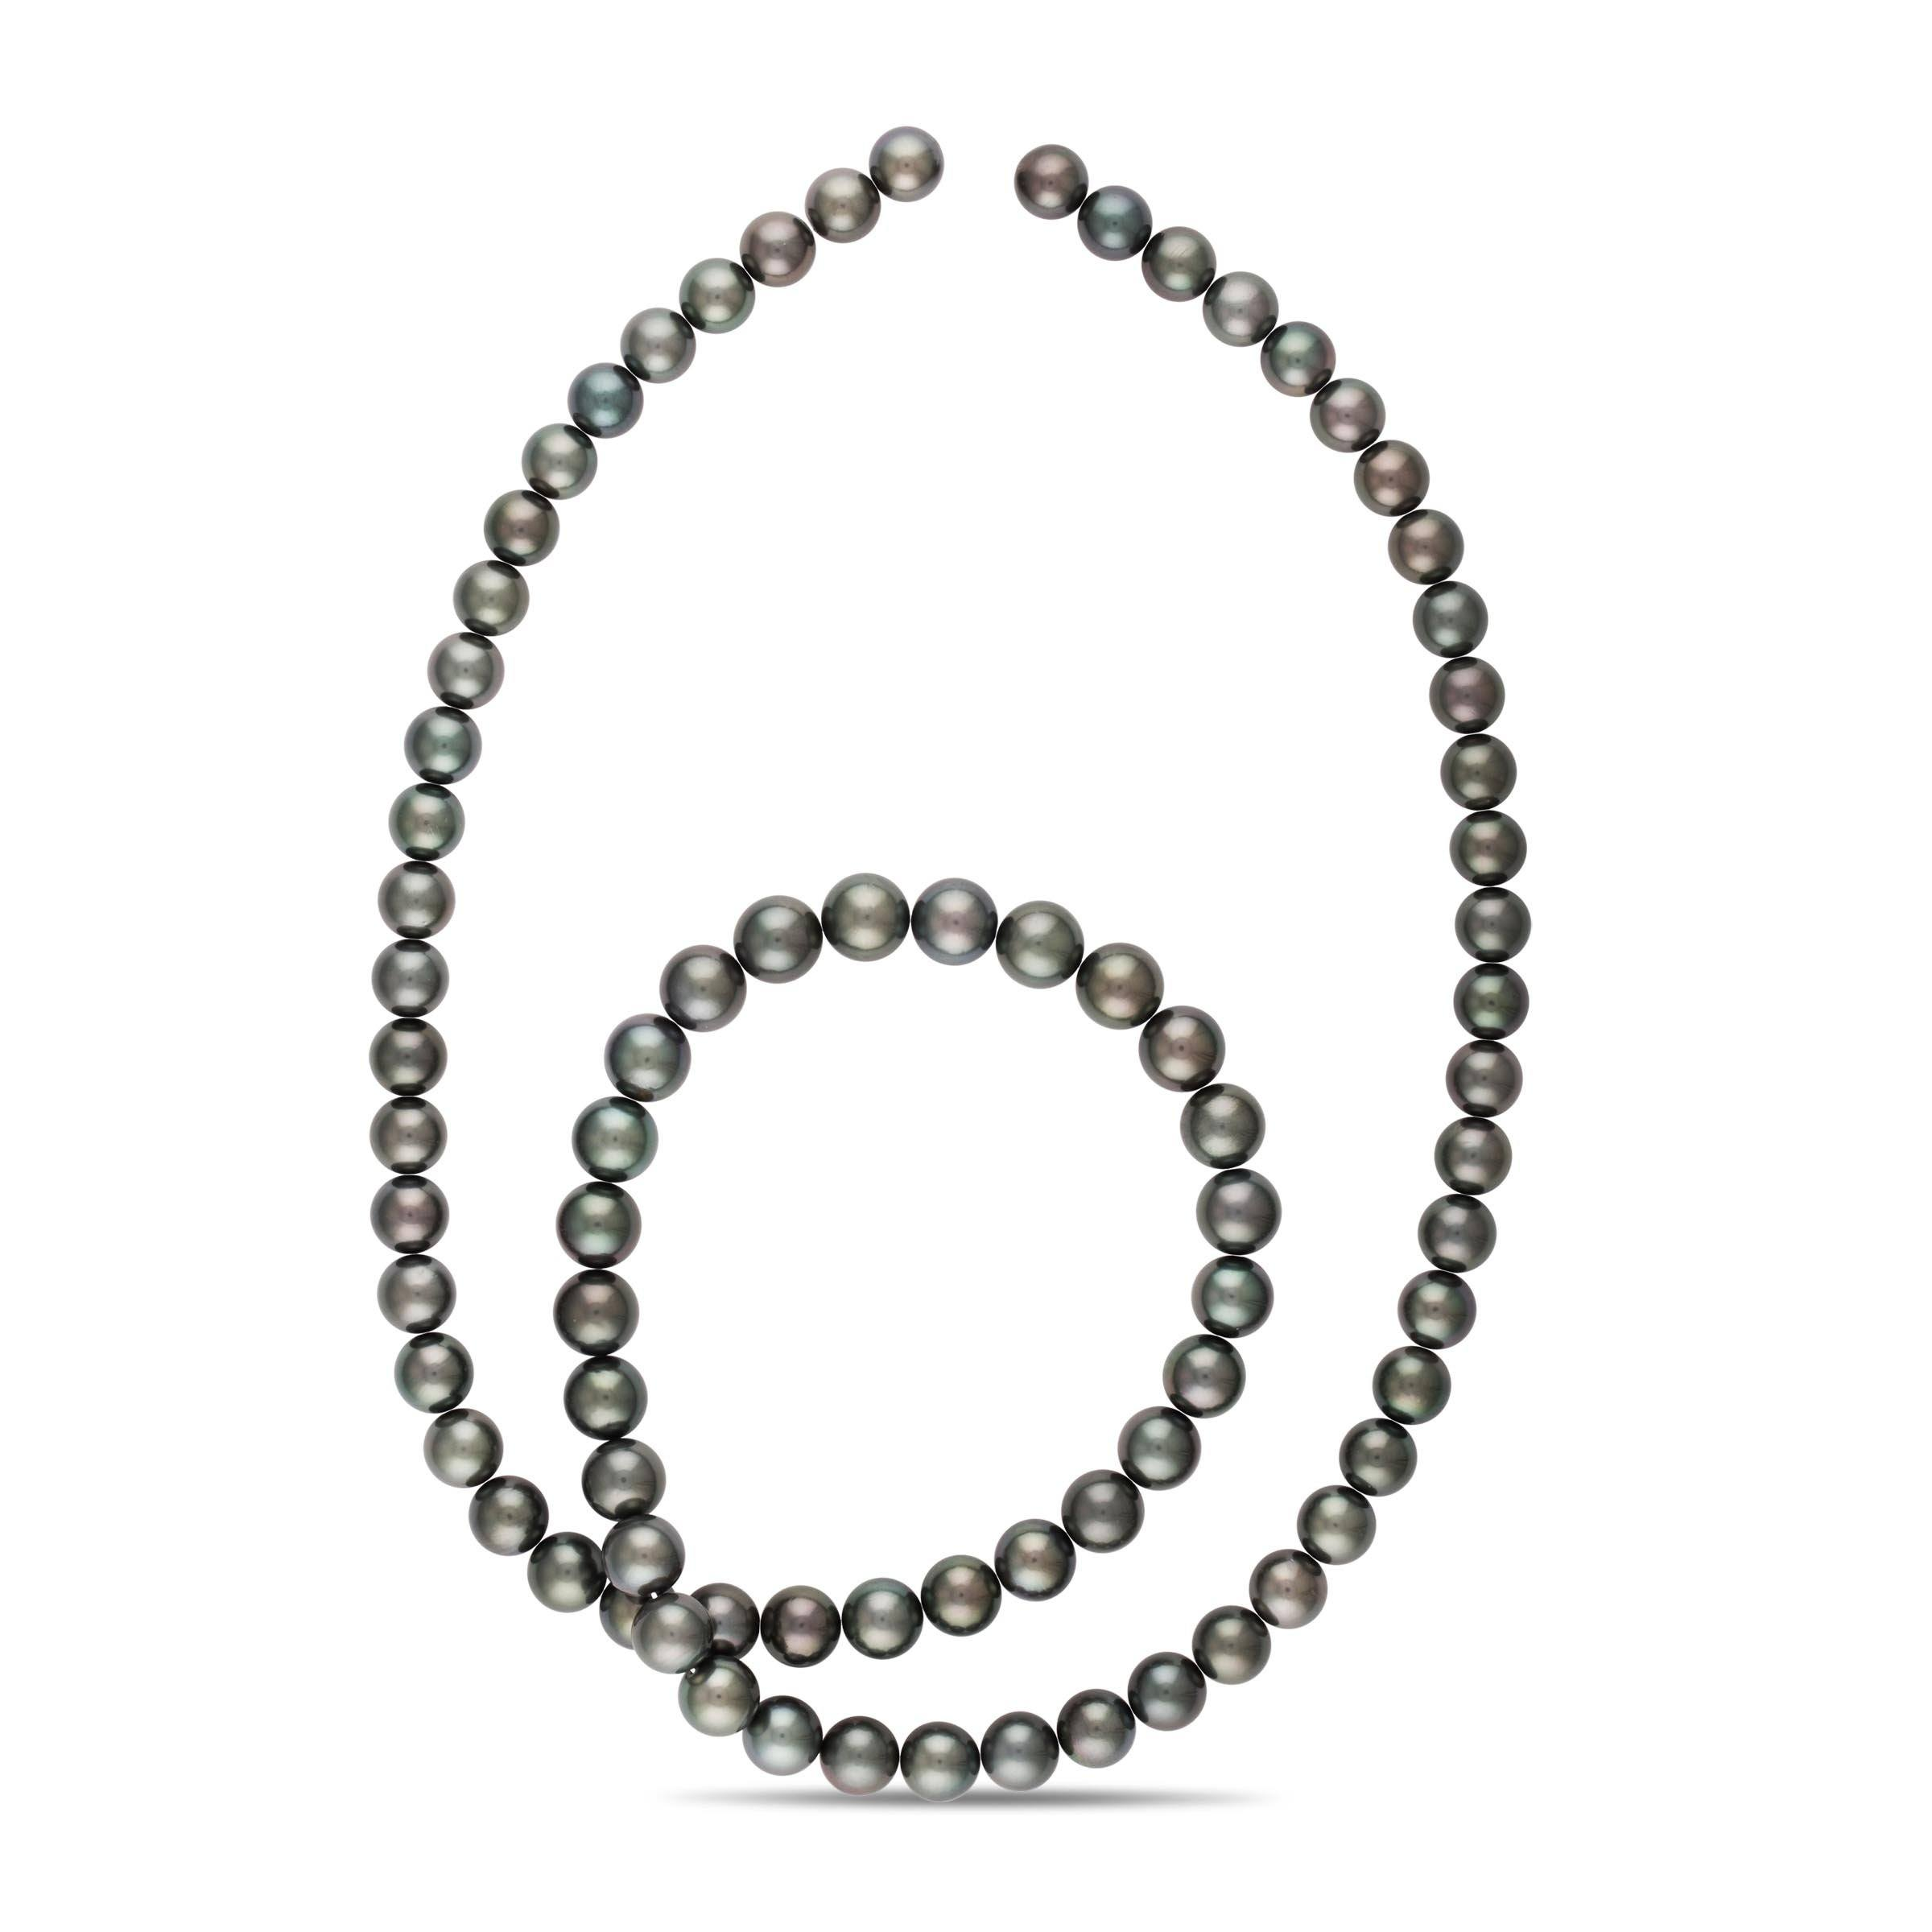 35-inch 10.0-11.7 mm AAA Round Tahitian Pearl Necklace